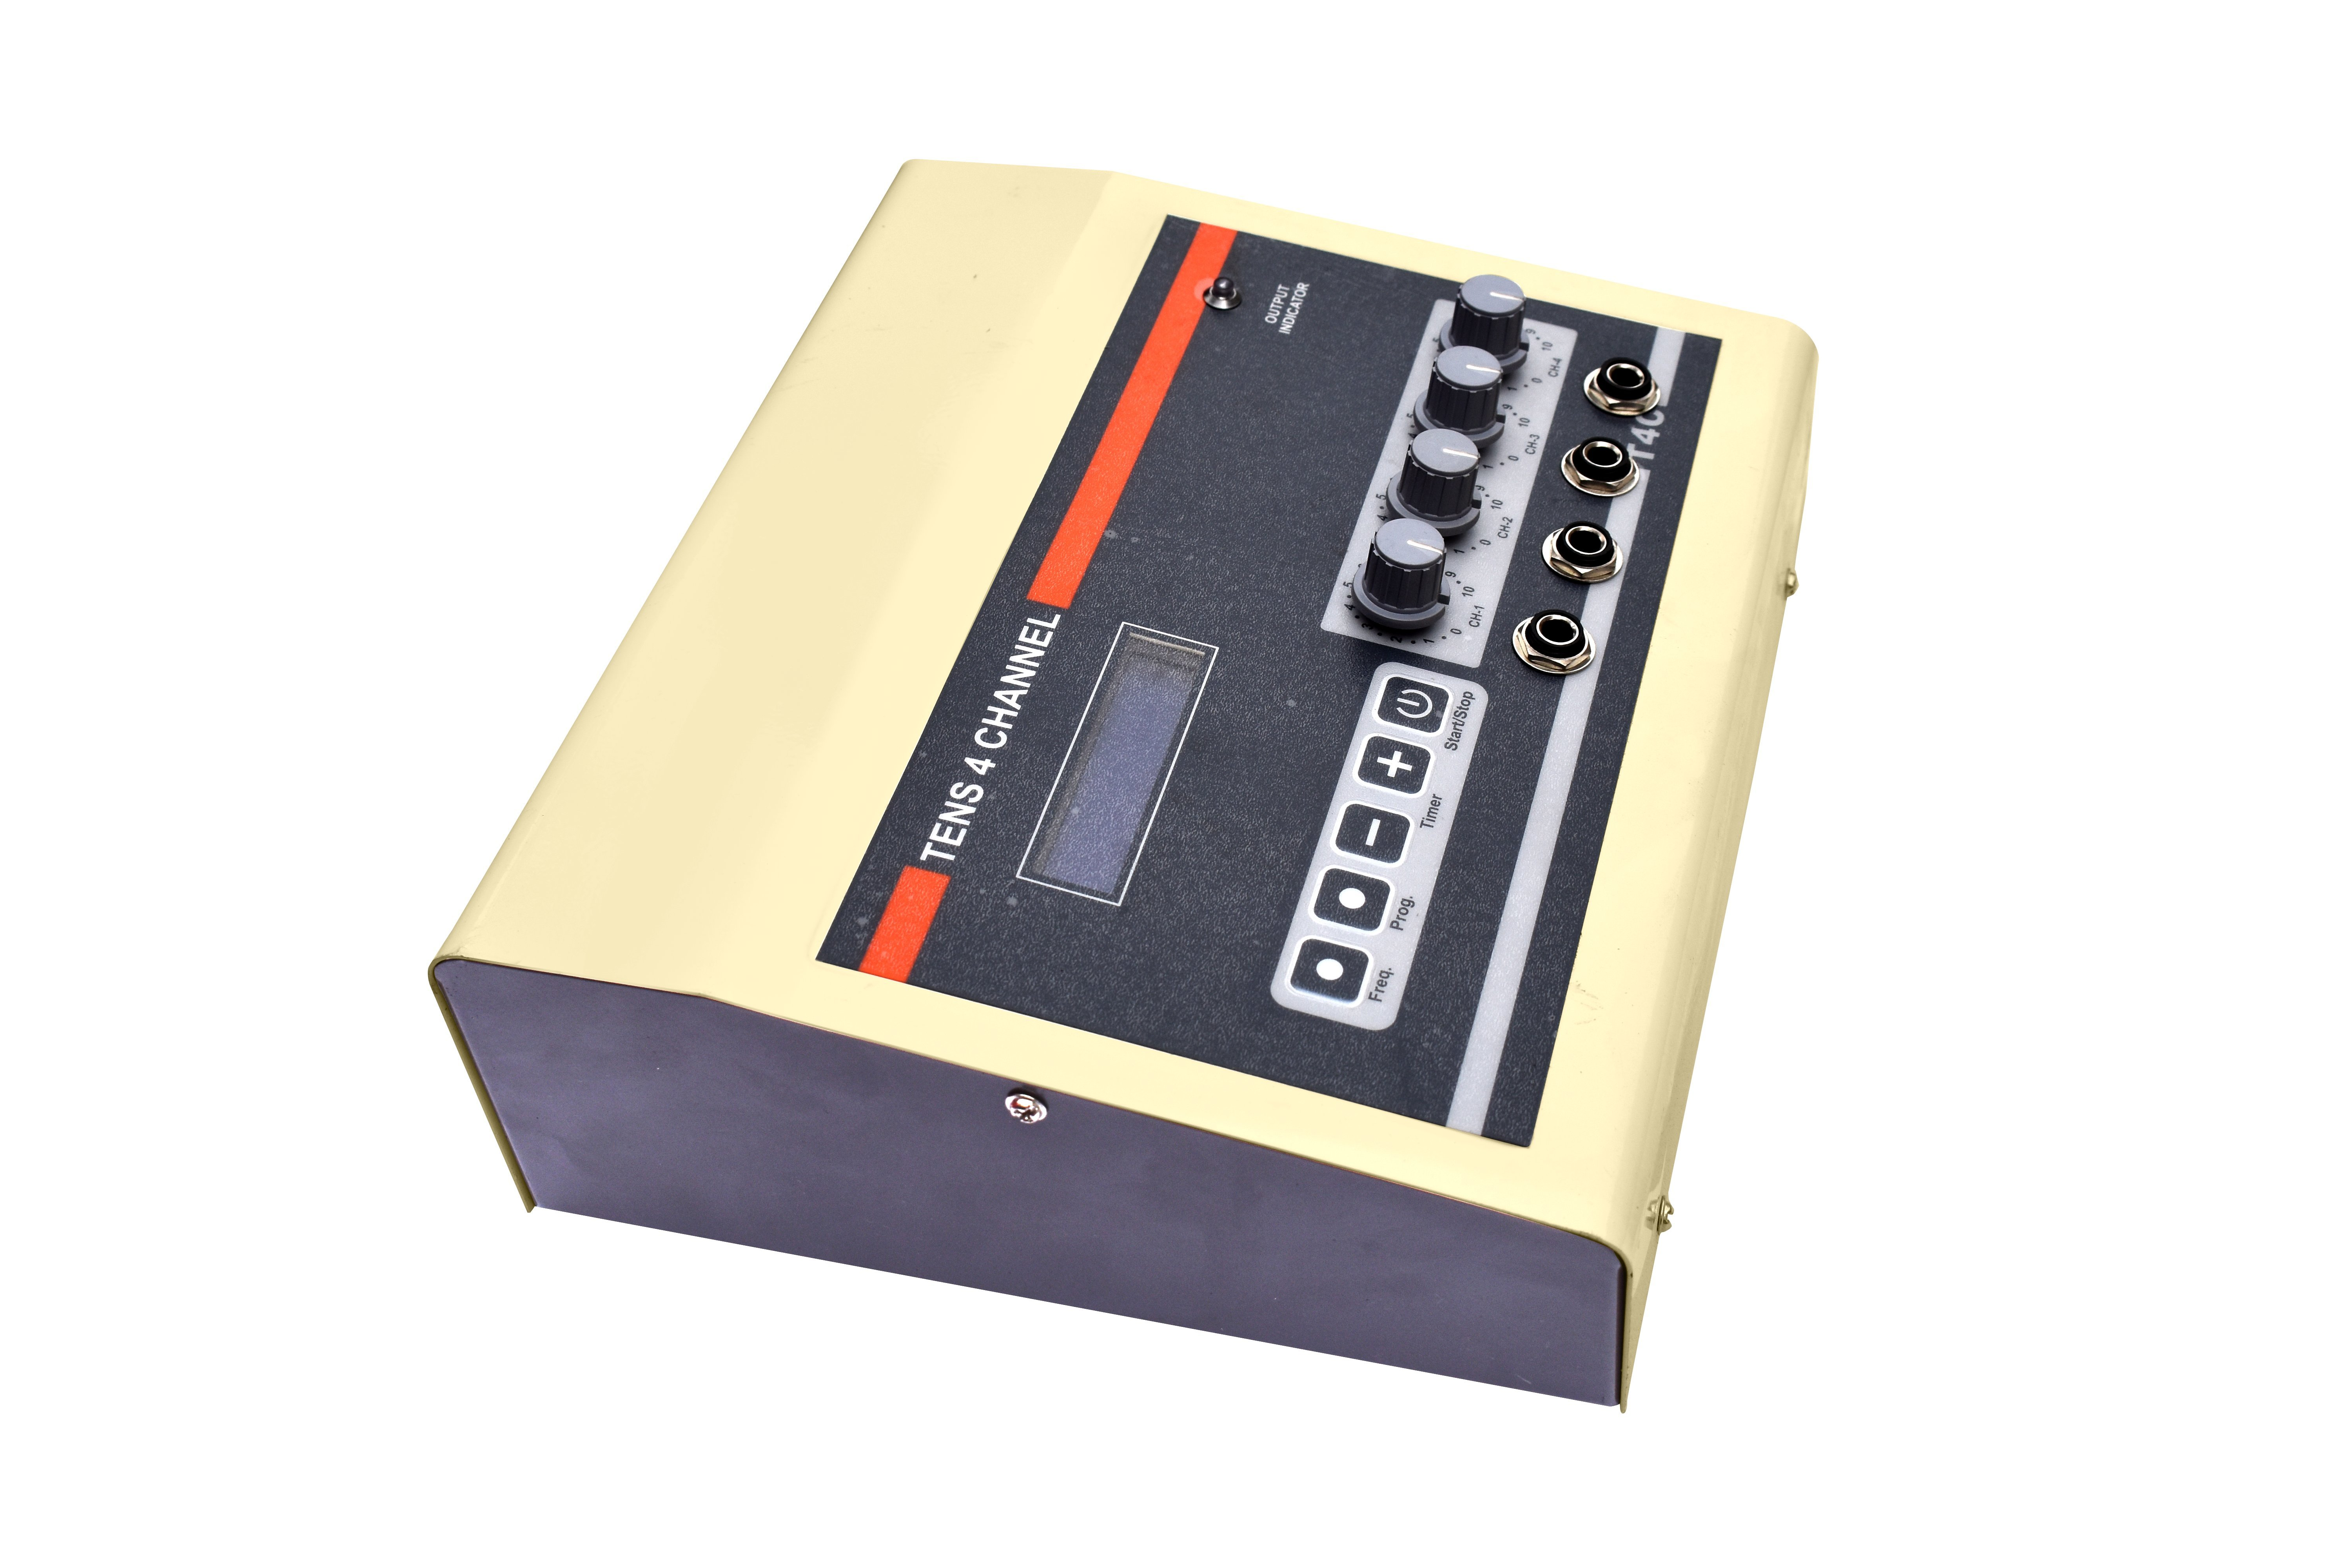 LCD 4 Channel Electrotherapy T.E.N.S Machine